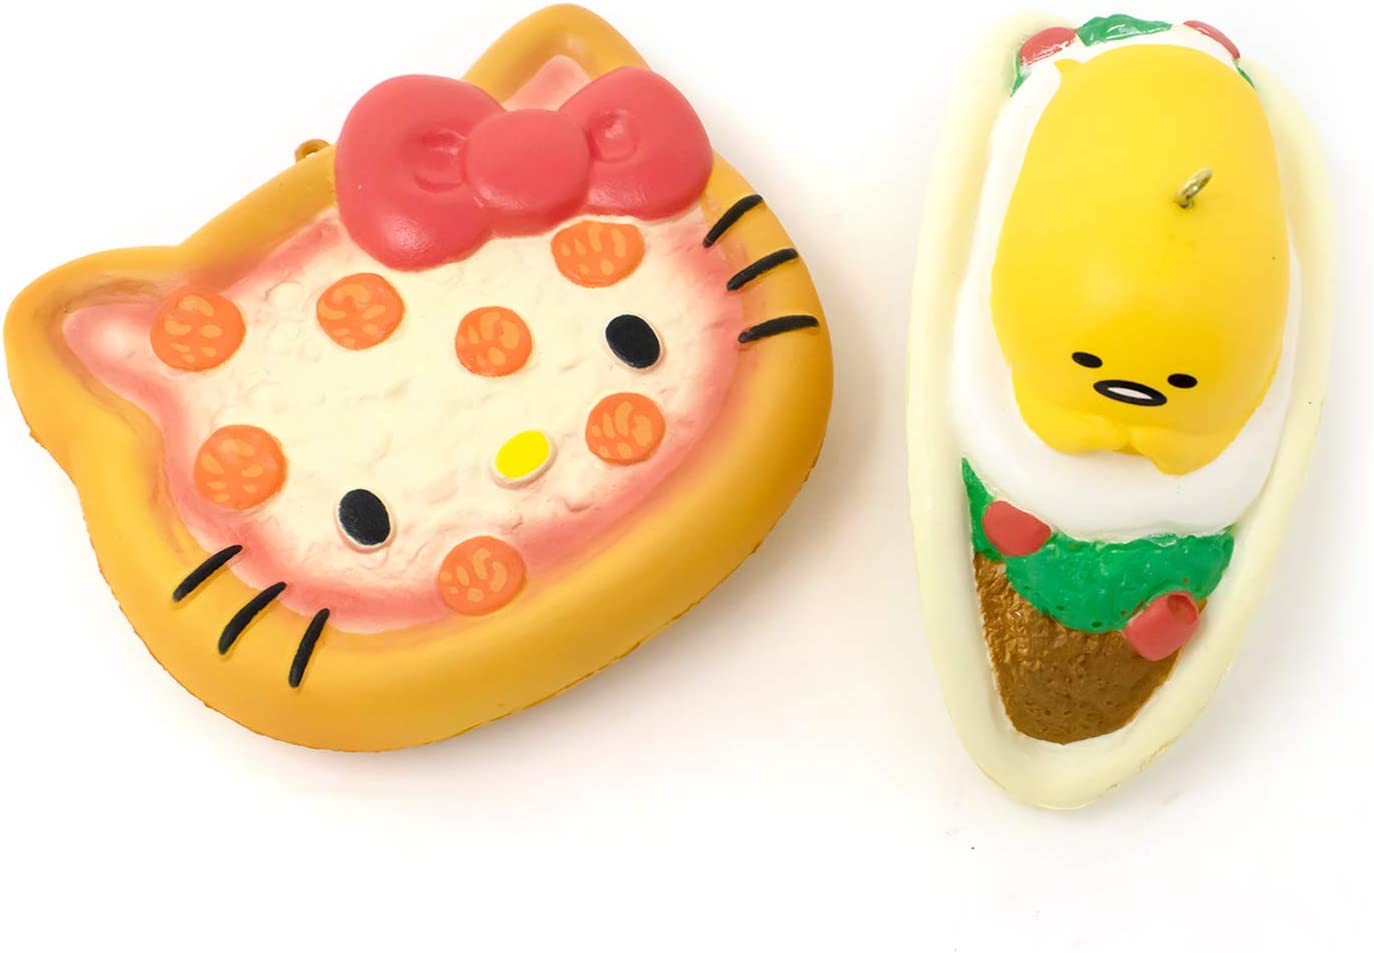 Hello Kitty Fastfoods ???? Gudetama Lazy Egg Yolk Diner [Slow Rising] Soft Stress Relief Cute Squishy Toys for Kids, 2-Piece Set [Fast Food Pizza, Diner Taco]